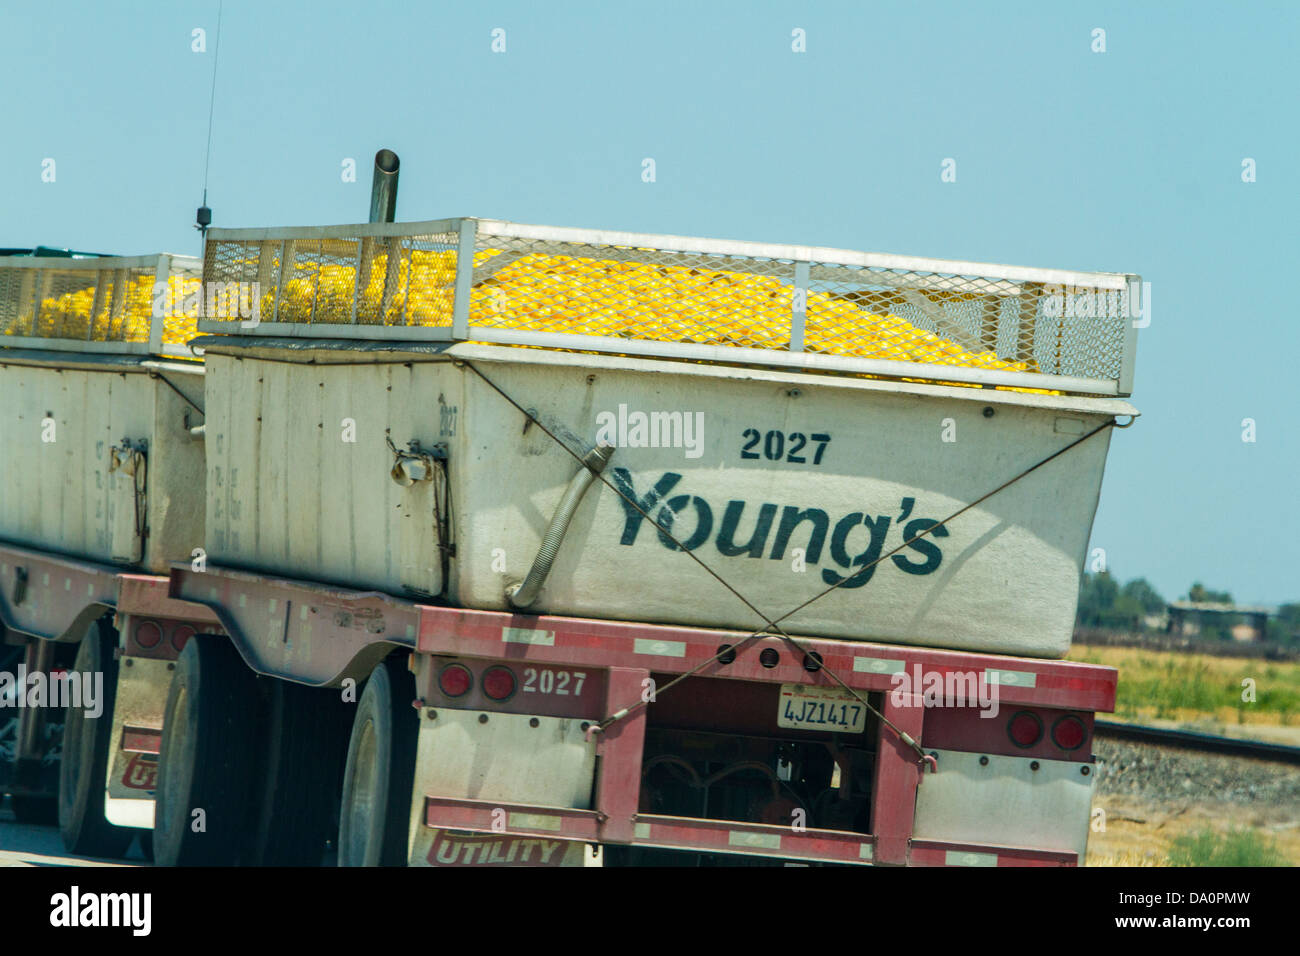 A Truck Load Of Lemons On Californias Highway 99 In The Central Valley